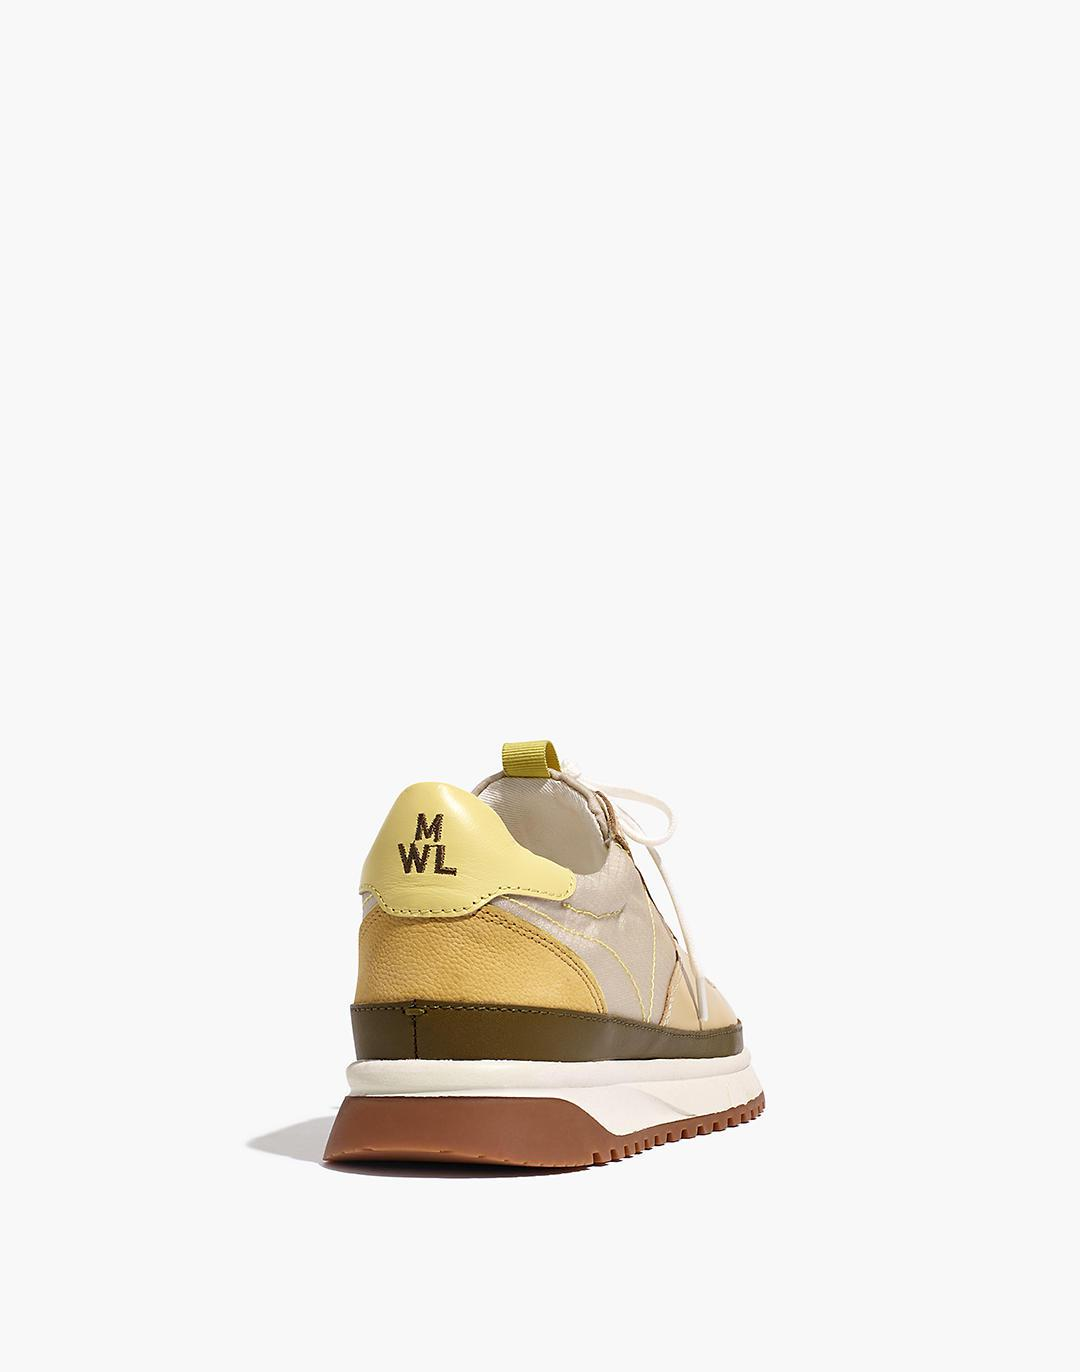 Kickoff Trainer Sneakers in Ripstop Nylon and Leather 2